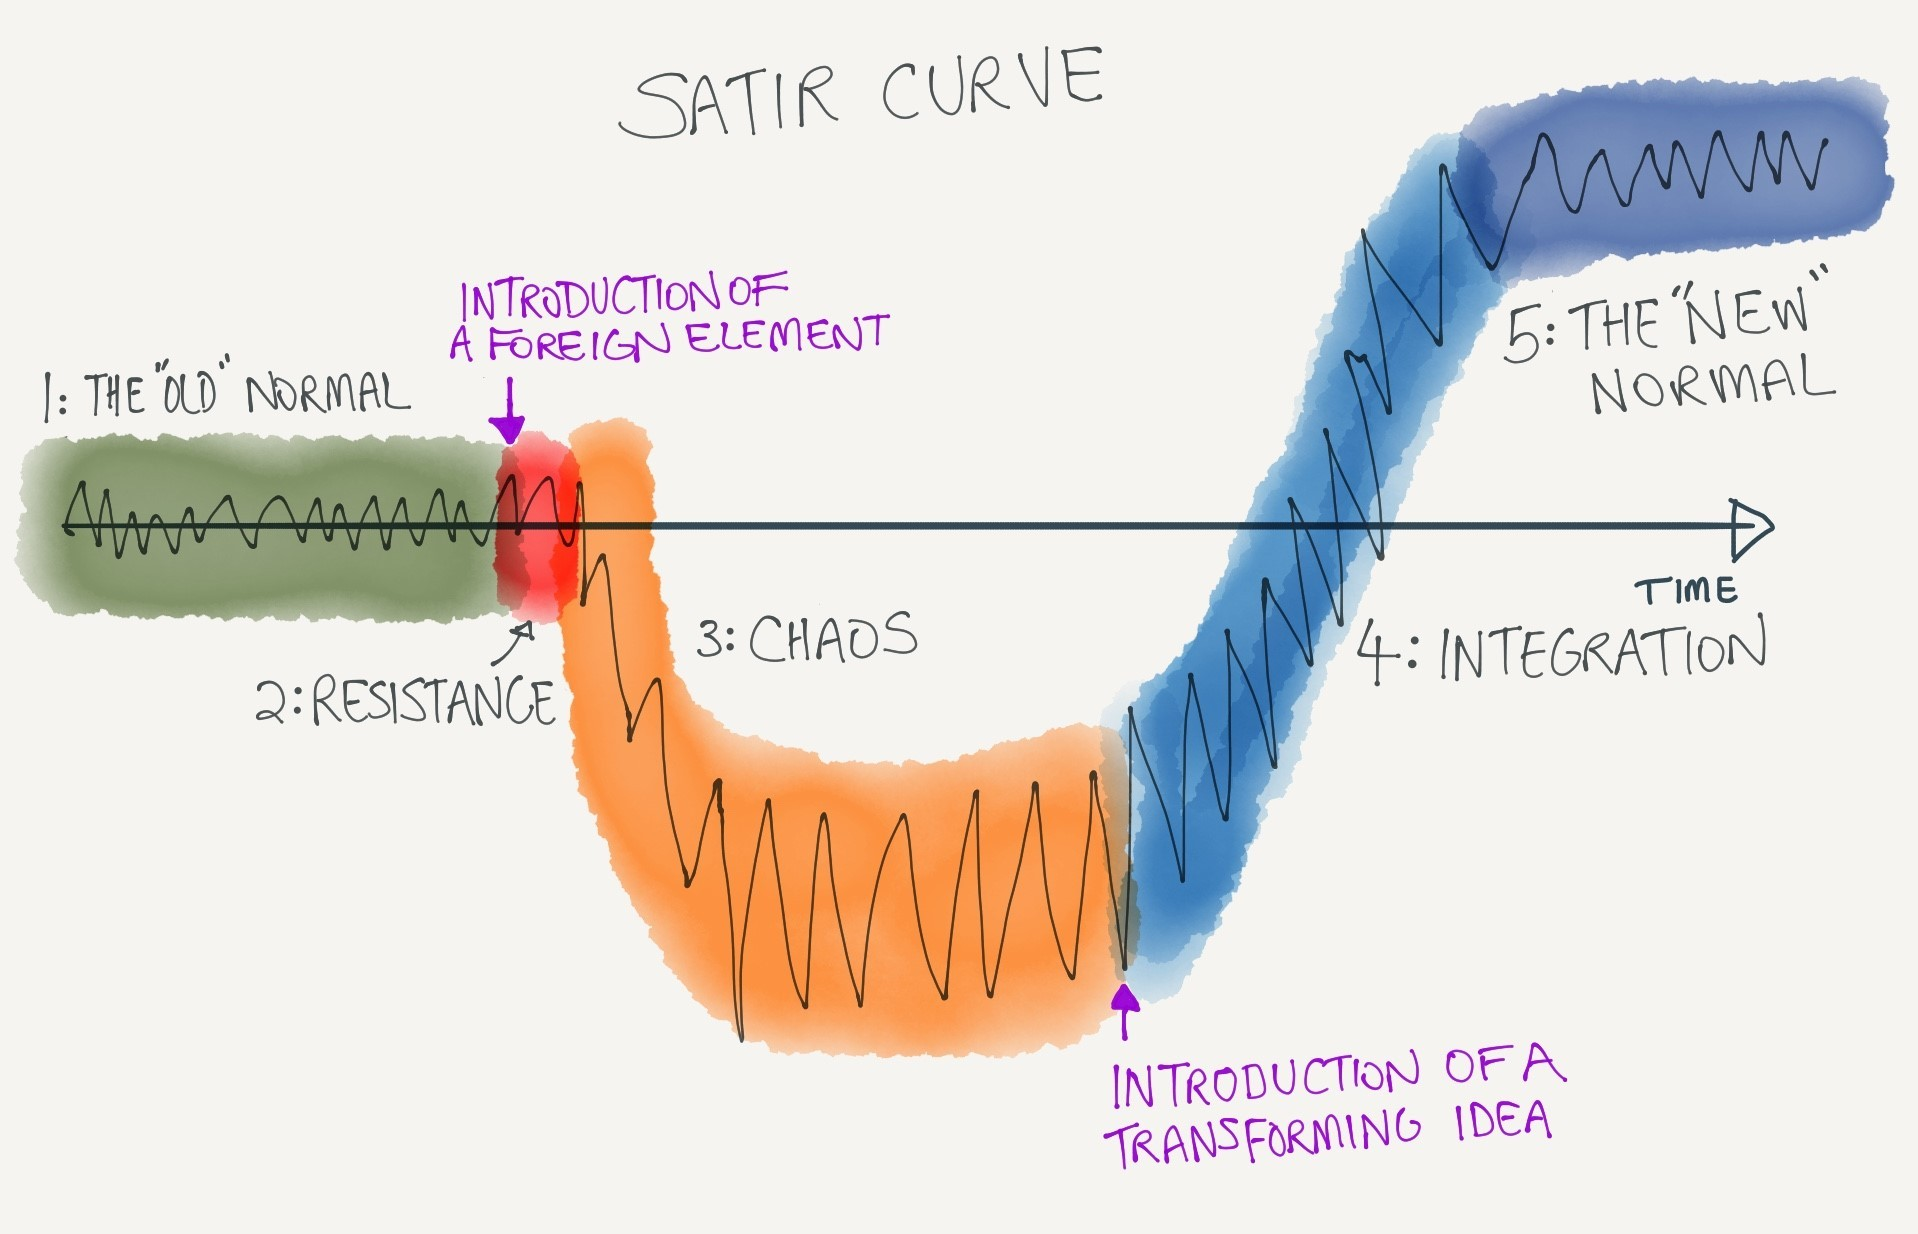 Satir Curve for change management